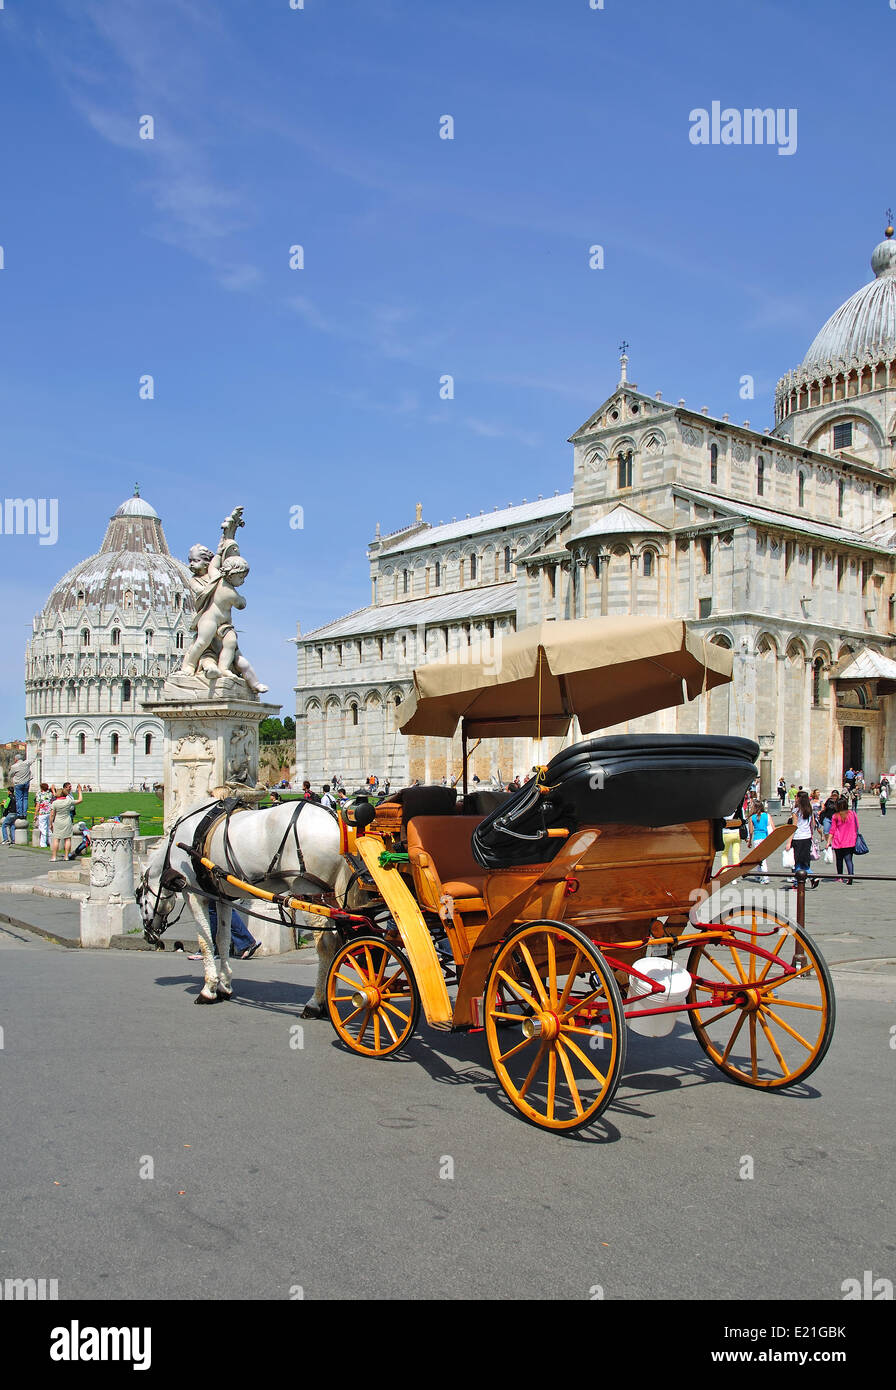 the Court of Miracles in Pisa - Stock Image